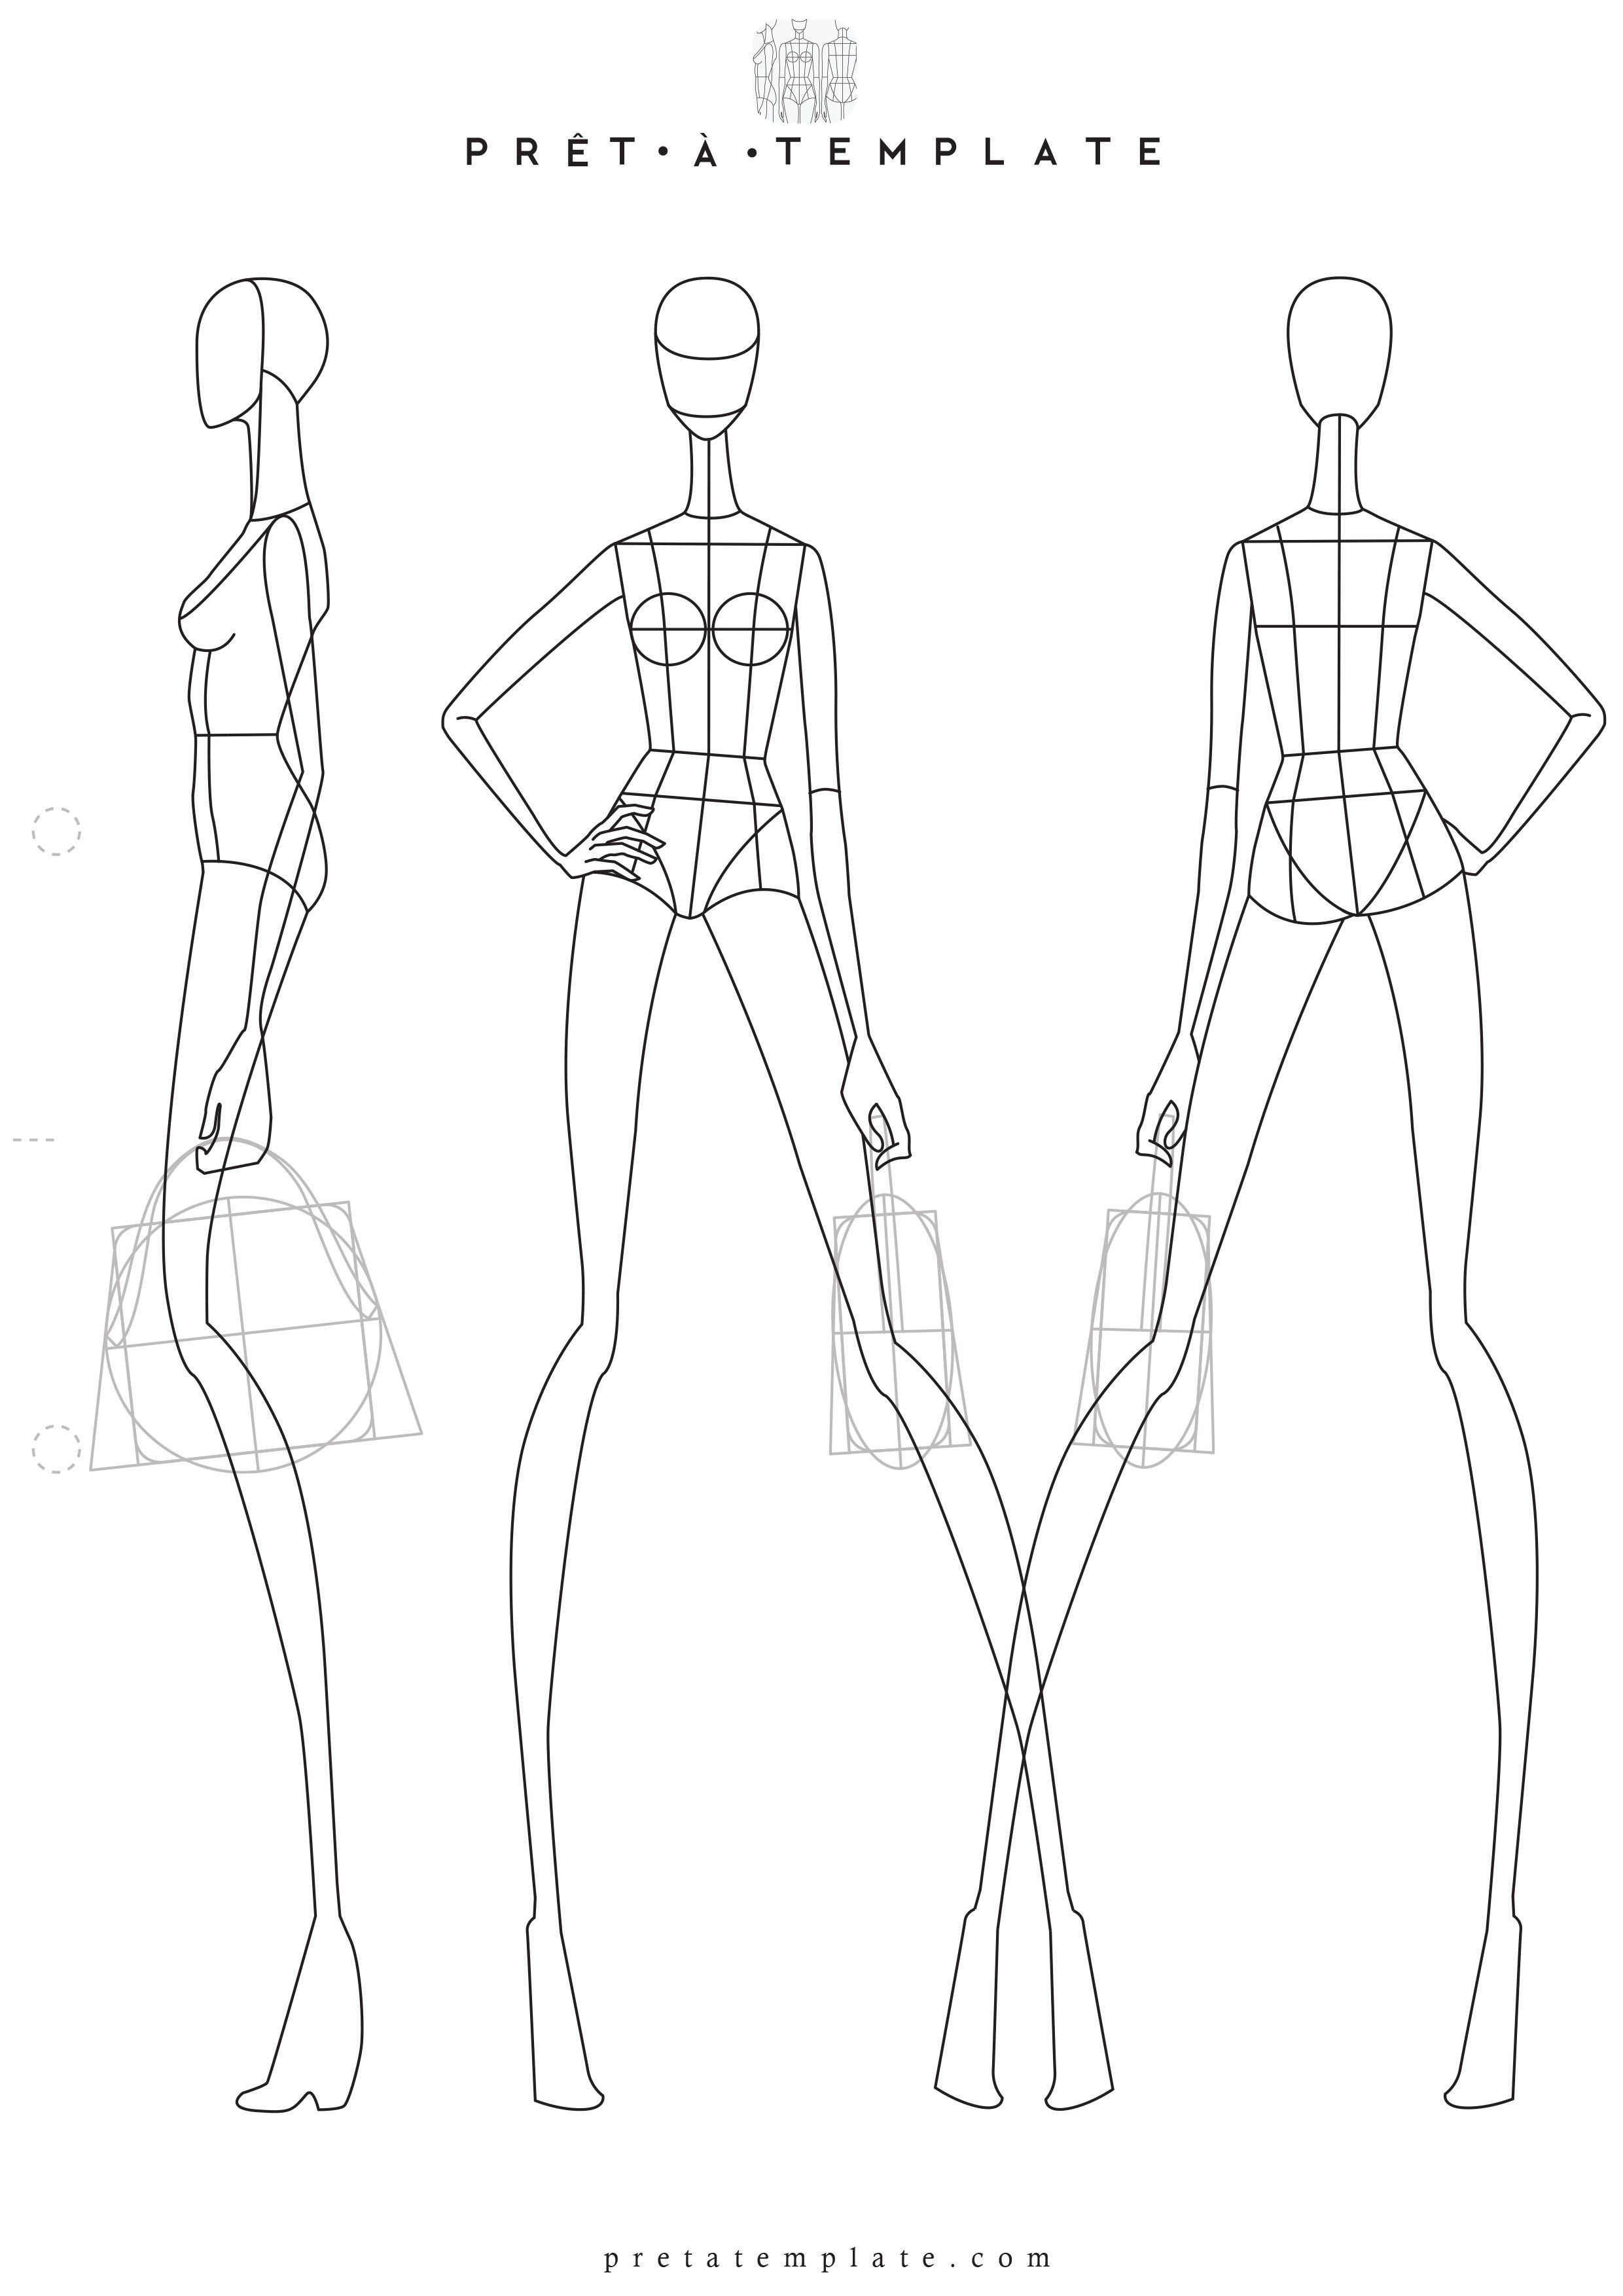 How to Draw a Fashionable Dress